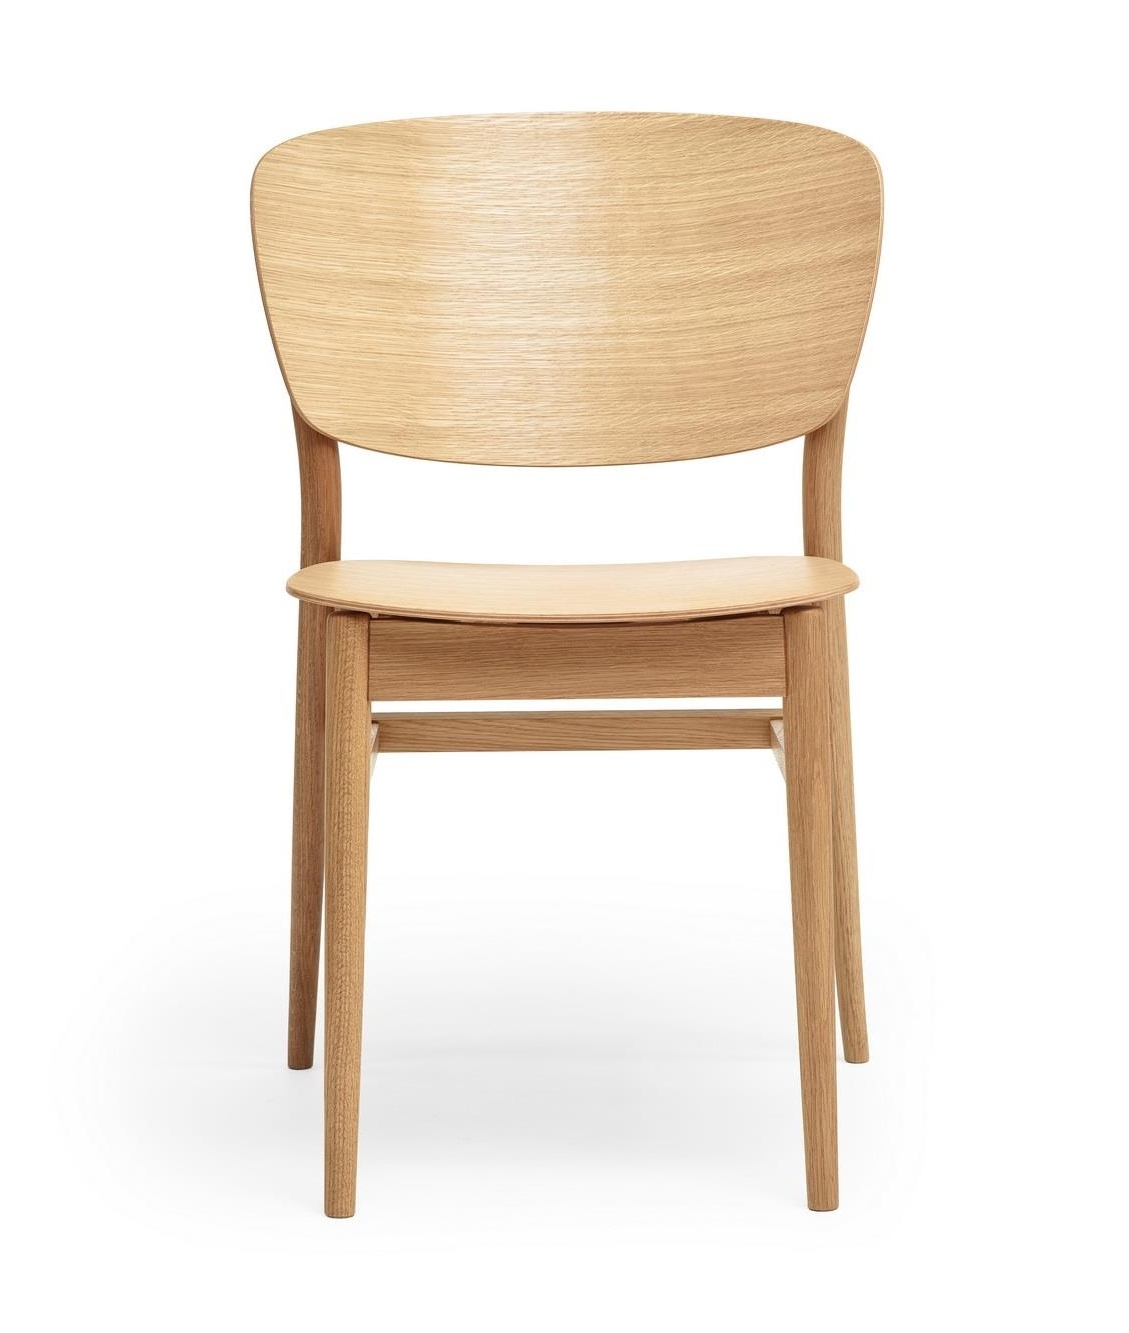 Valencia Side Chair, Wooden – Telegraph Contract Furniture For Most Recently Released Valencia Side Chairs (View 13 of 20)